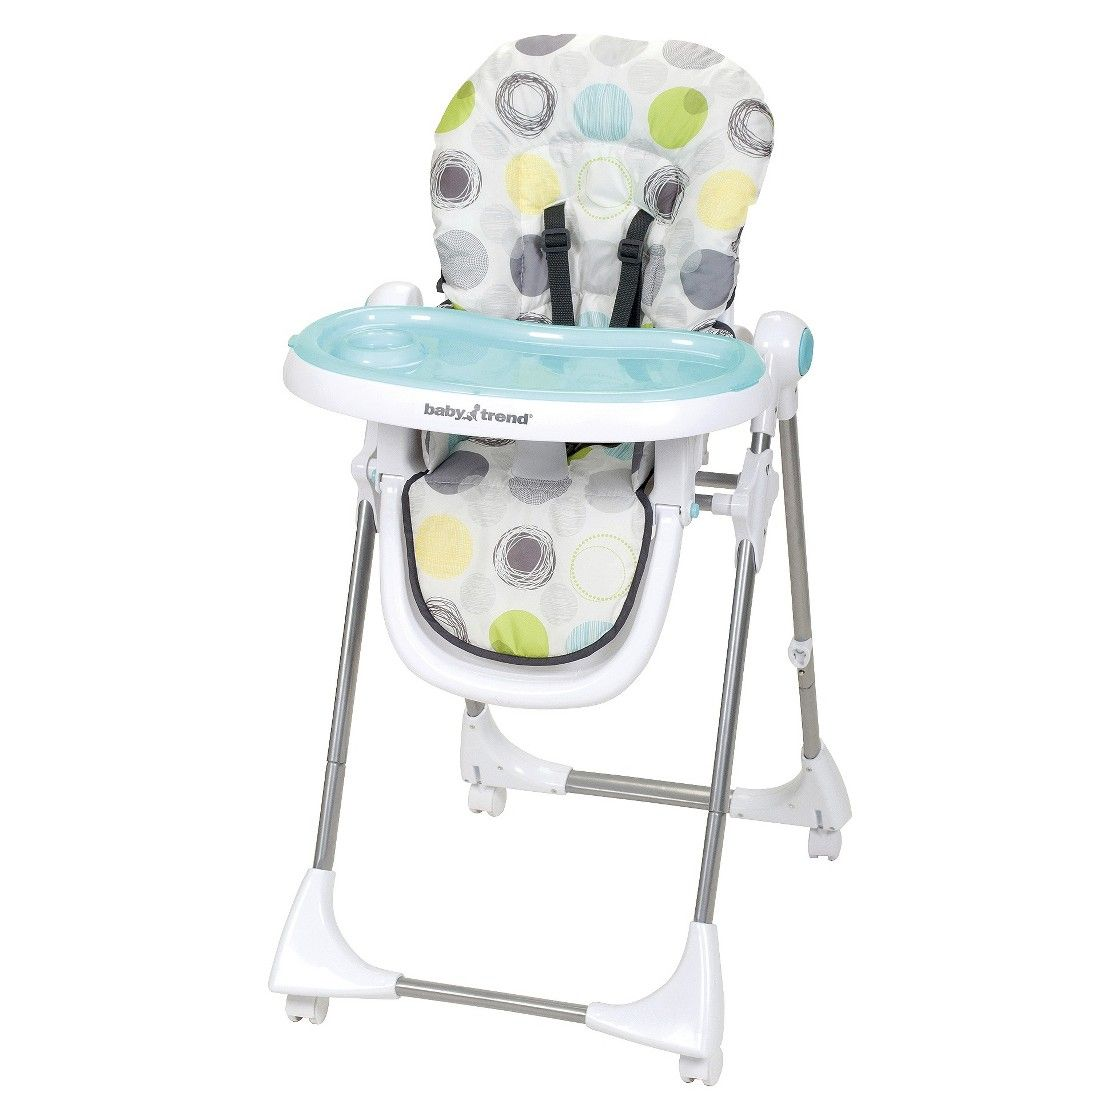 Baby Trend High Chair @ Target